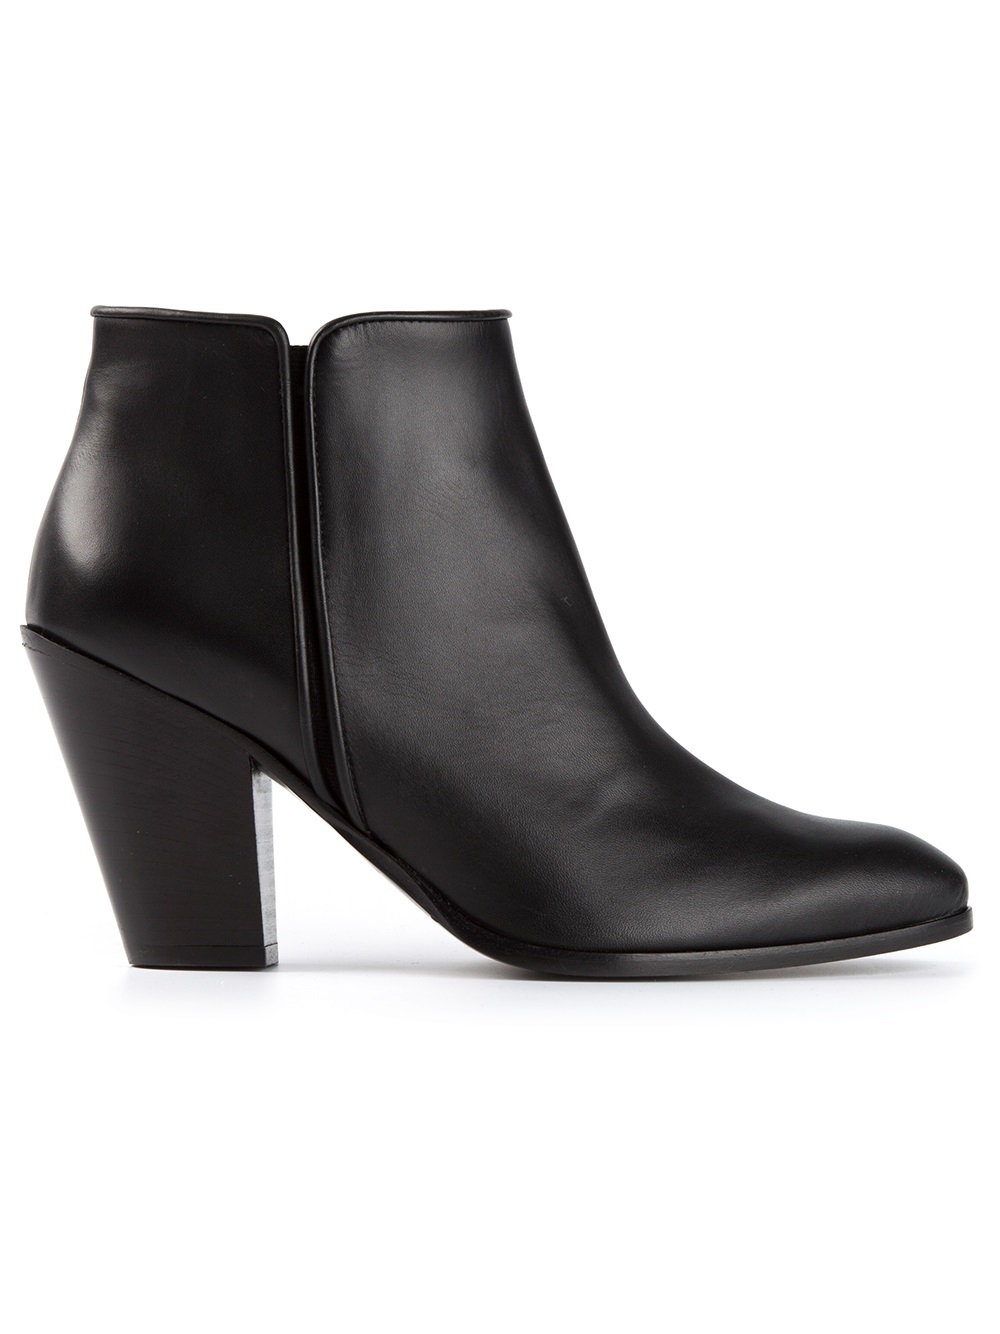 giuseppe zanotti classic ankle boots in black lyst